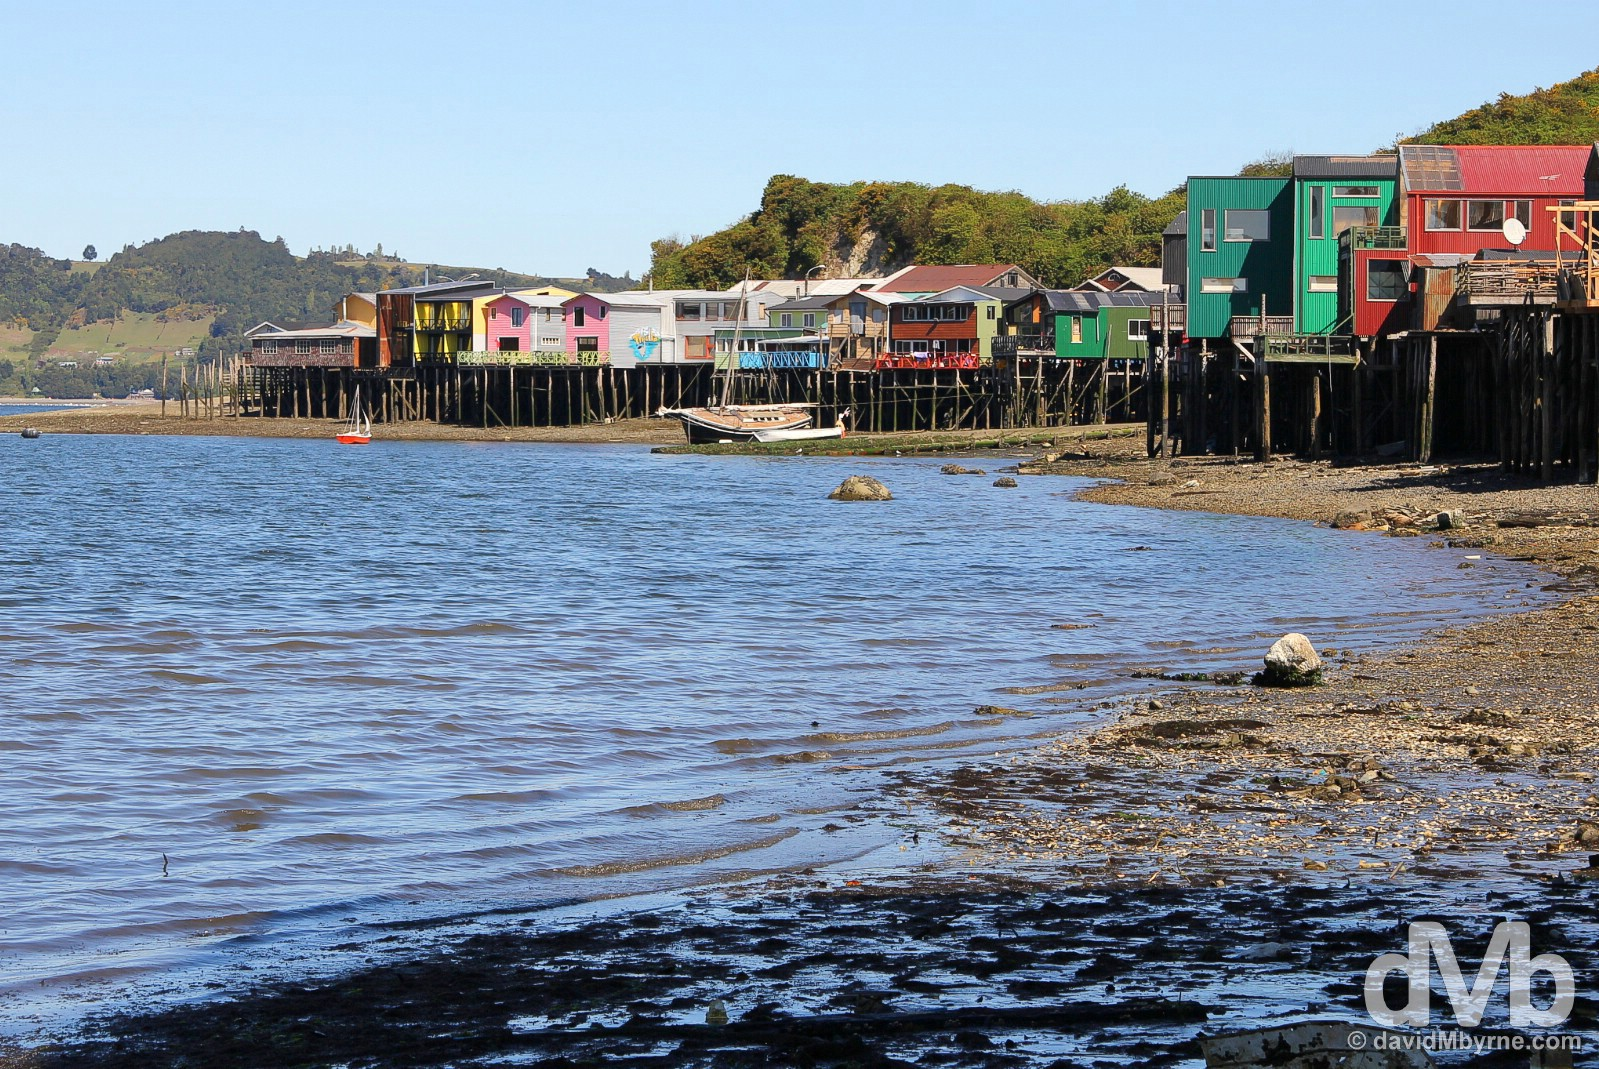 Palafitos at low tide in Castro, Chiloe, Chile. October 22, 2015.